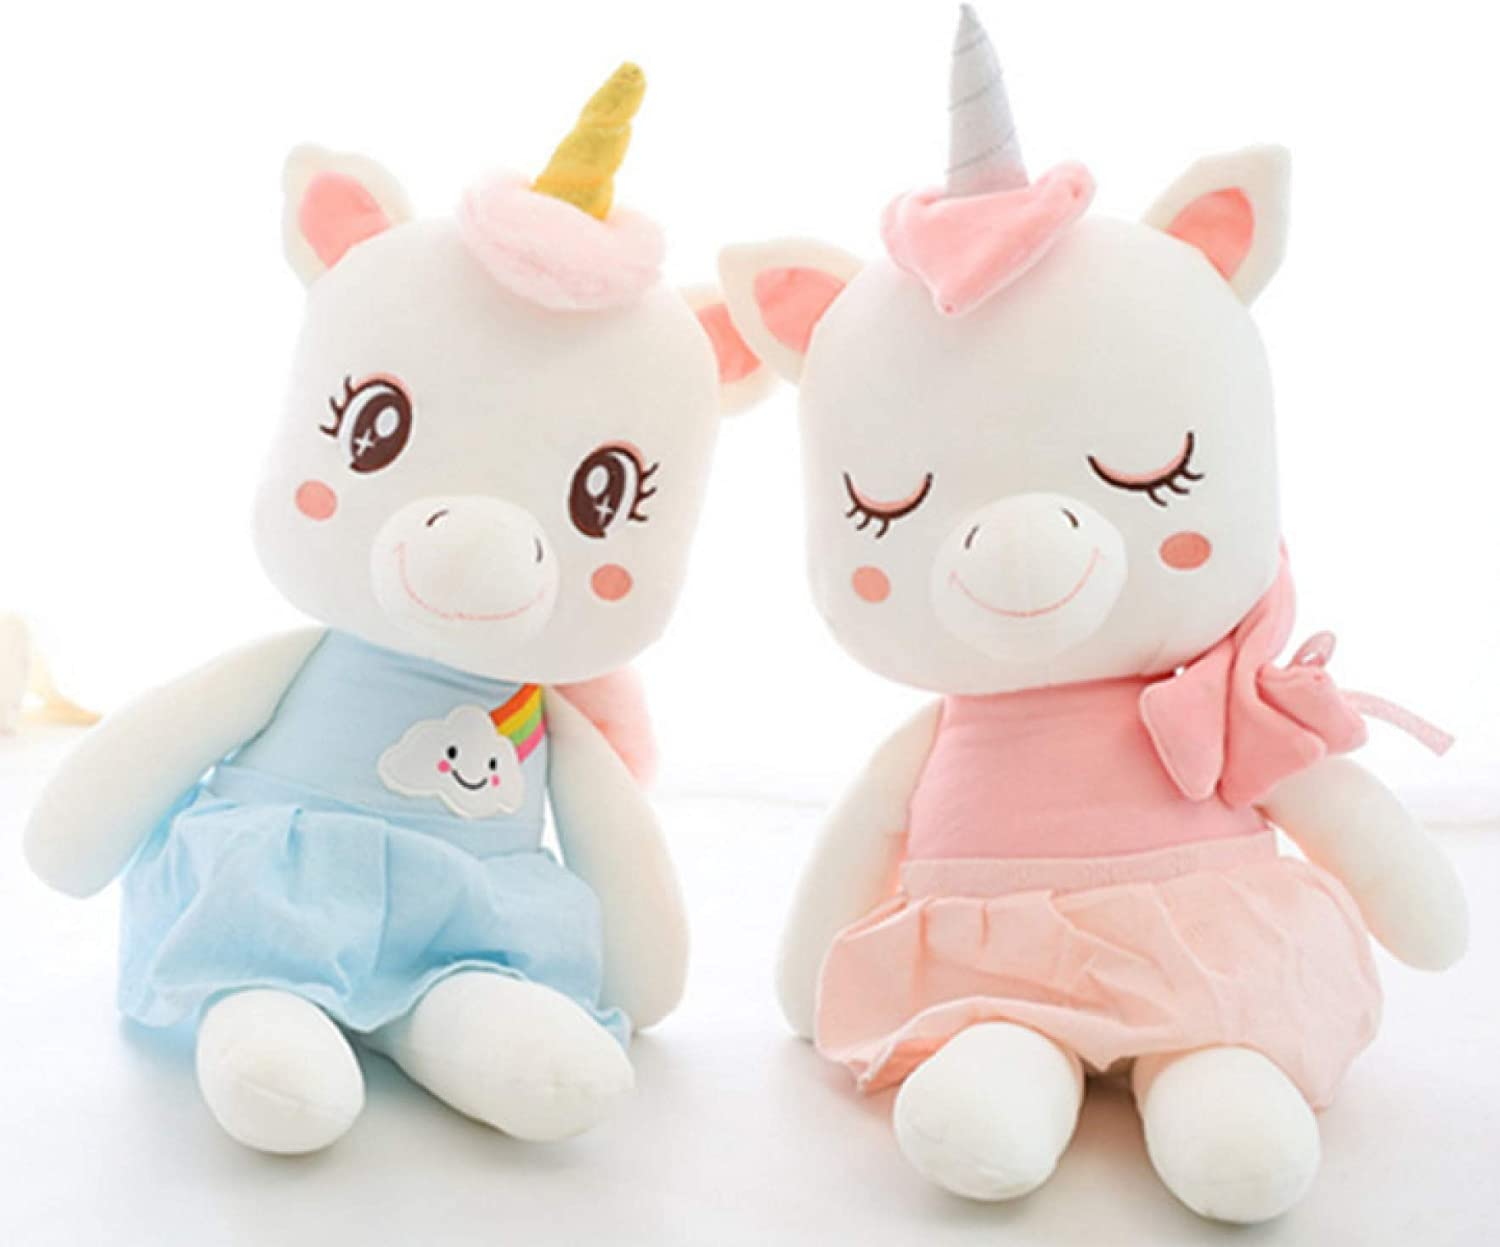 70% Baltimore Mall OFF Outlet Kawaii Unicorn Plush Toy Baby Toys Stuffed Appease Cut Doll Soft